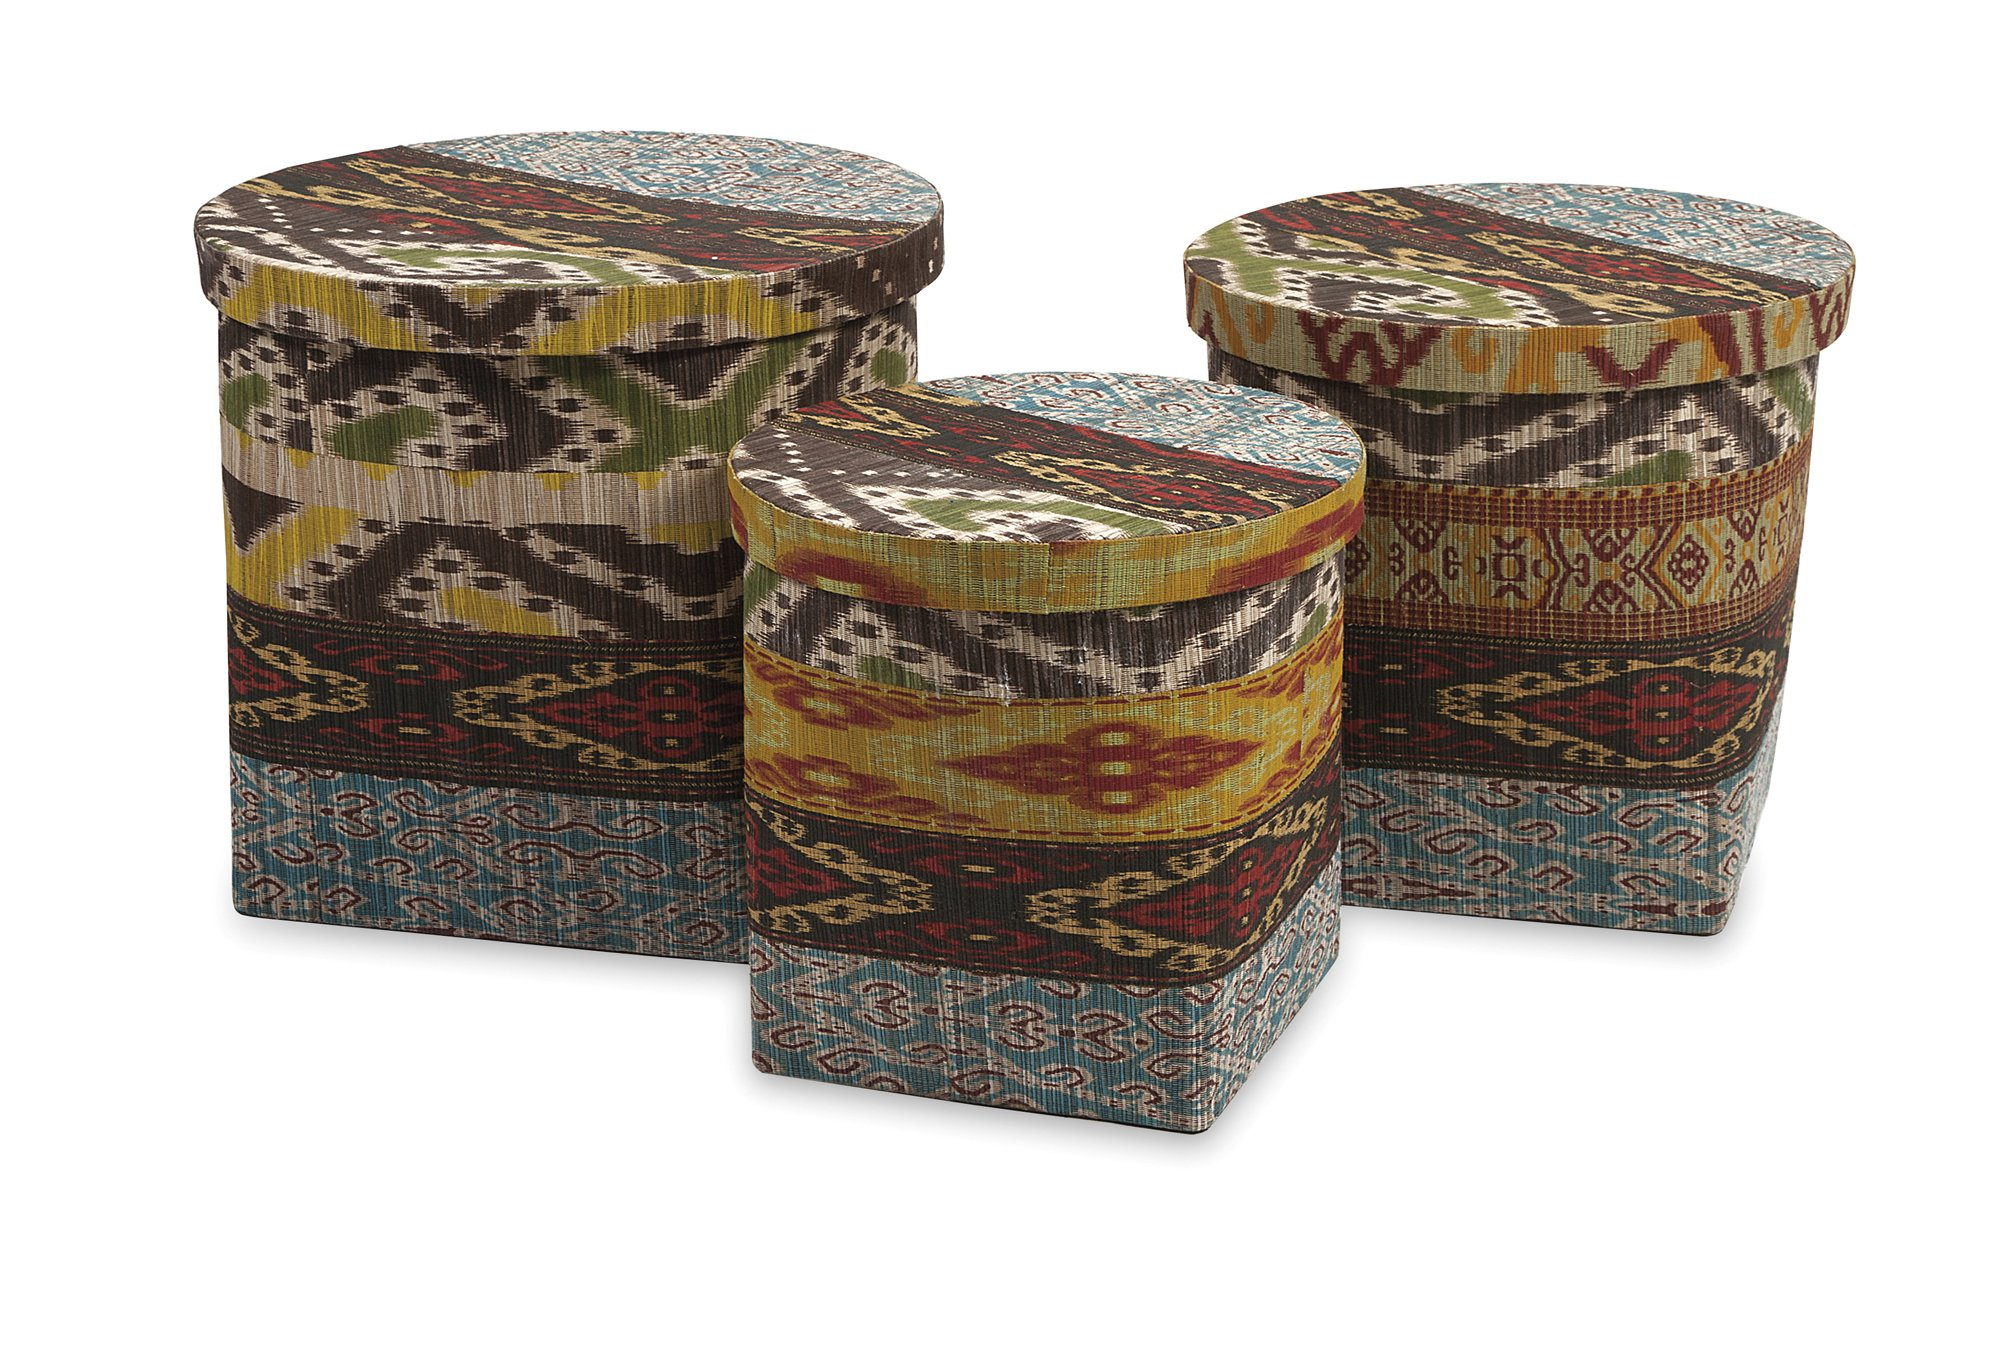 IMAX 89868-3 Tymon Water hyacinth Baskets with Lids, 3-Pack